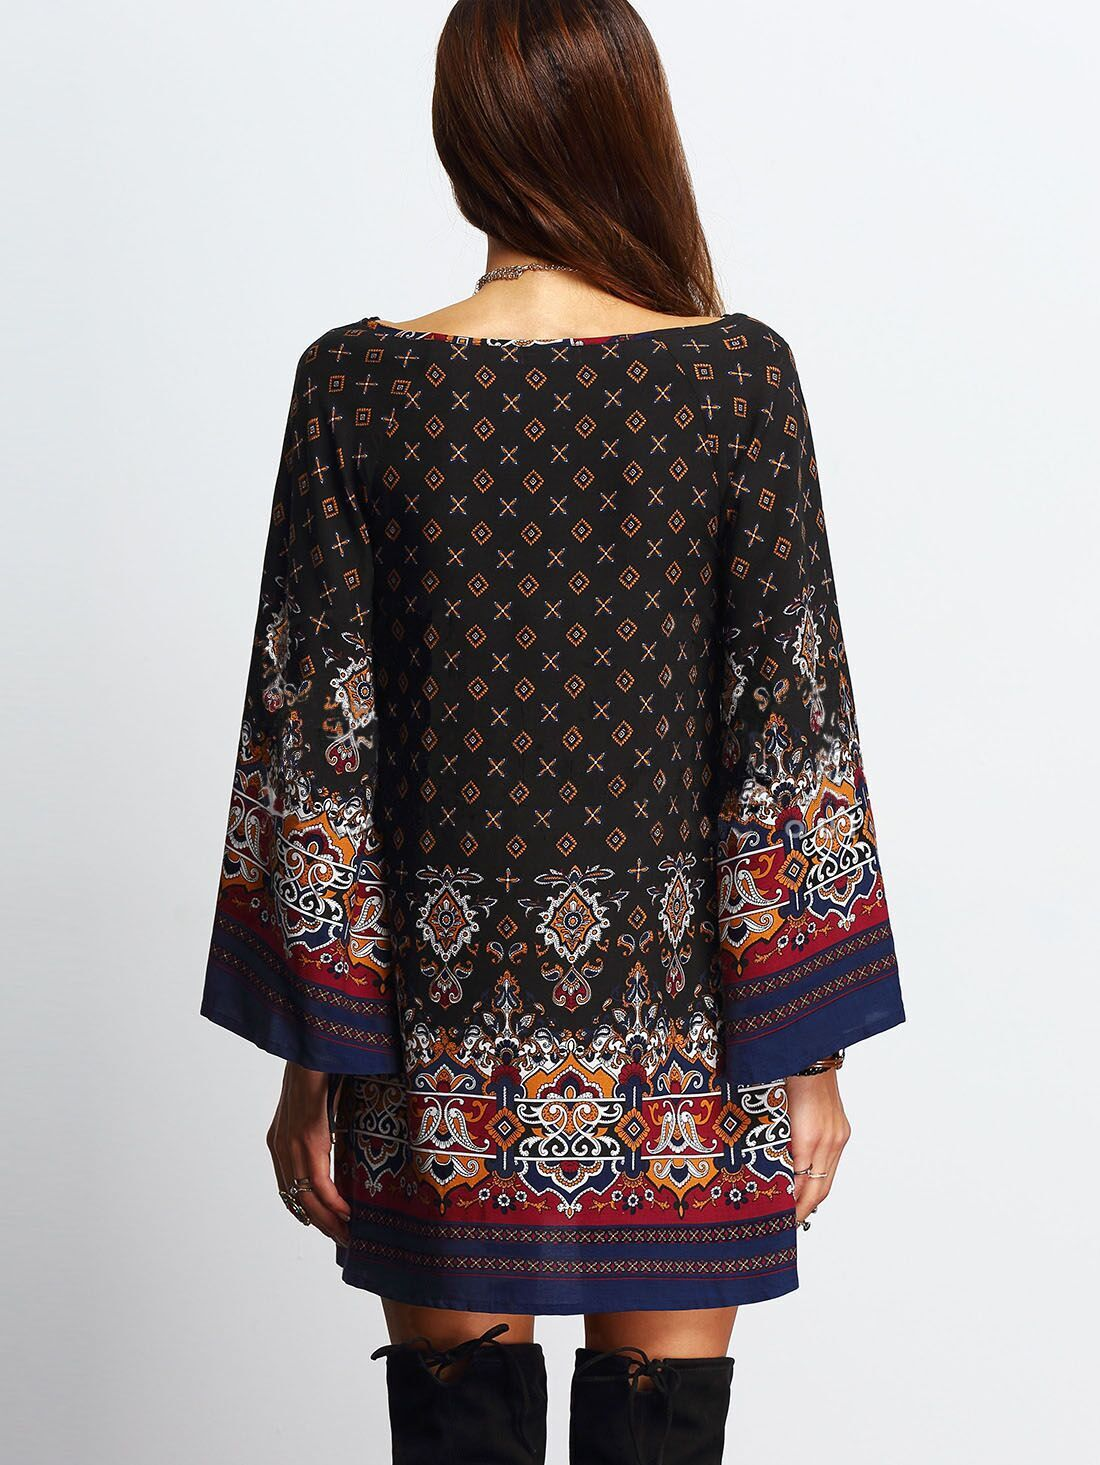 2016-Summer-new-European-retro-ethnic-Baroque-printing-women-clothing-loose-floral-blouse-Casual-Bea-32656935036